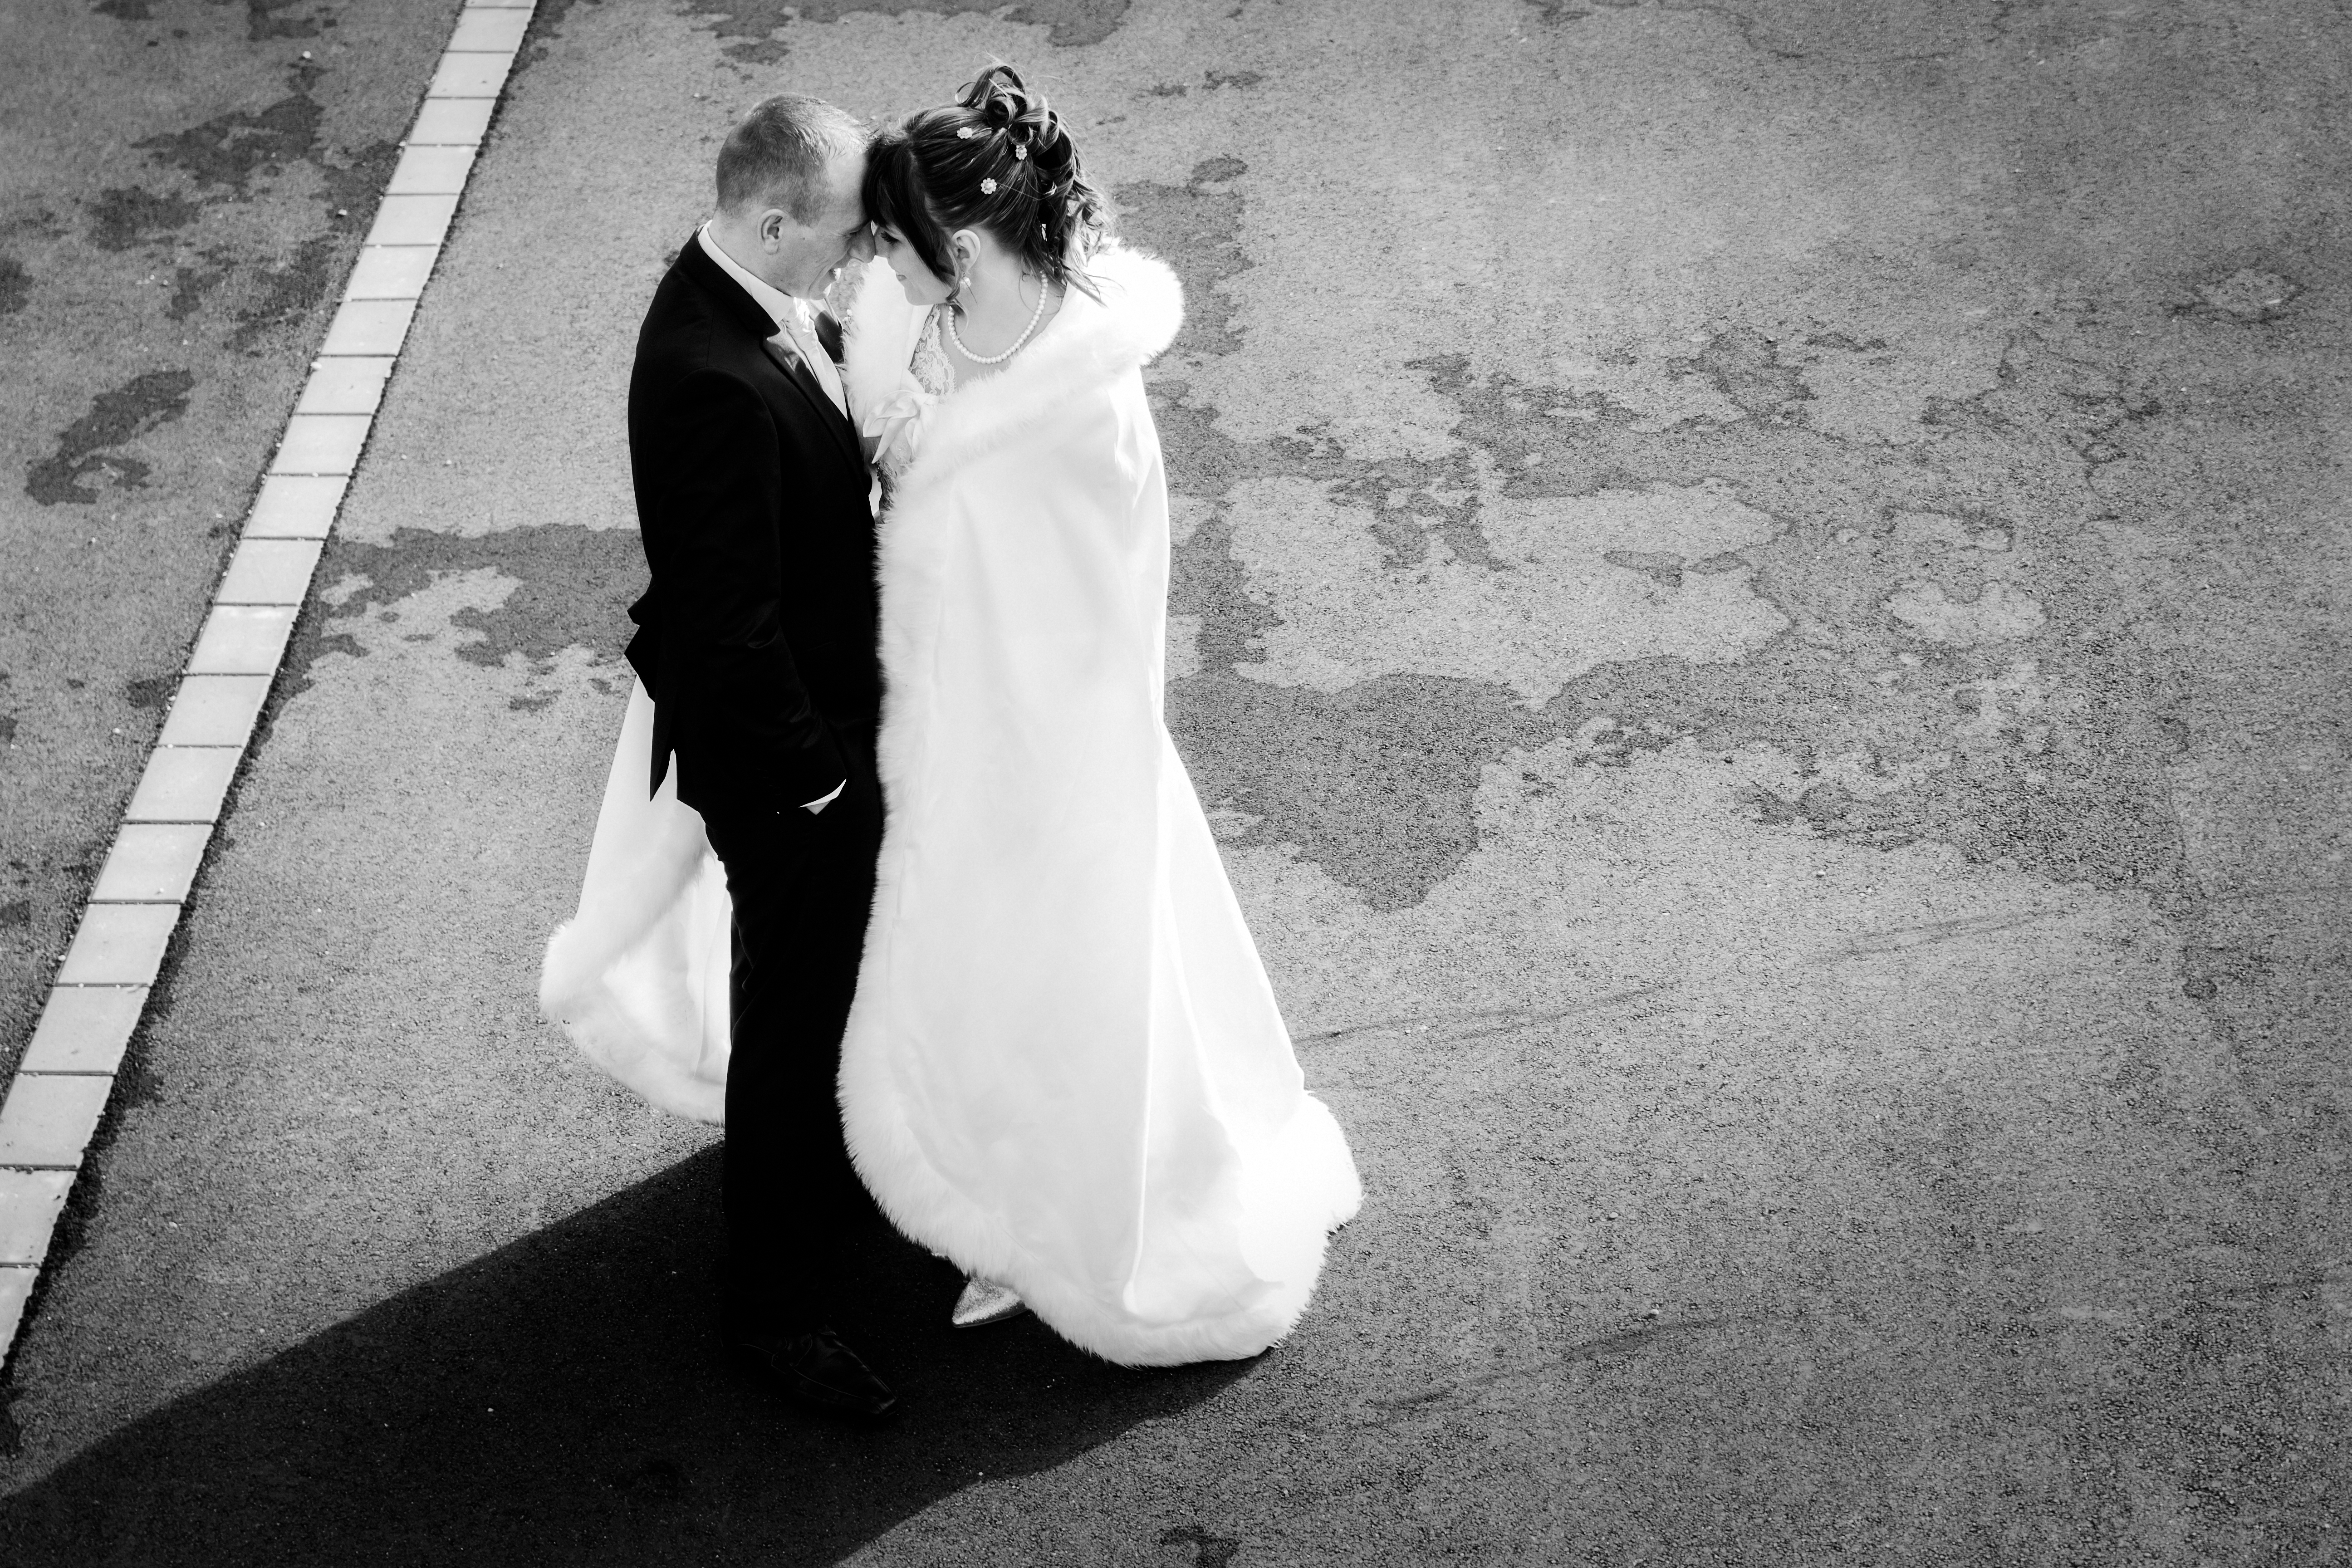 Mariage photo pro Guebwiller Alsace